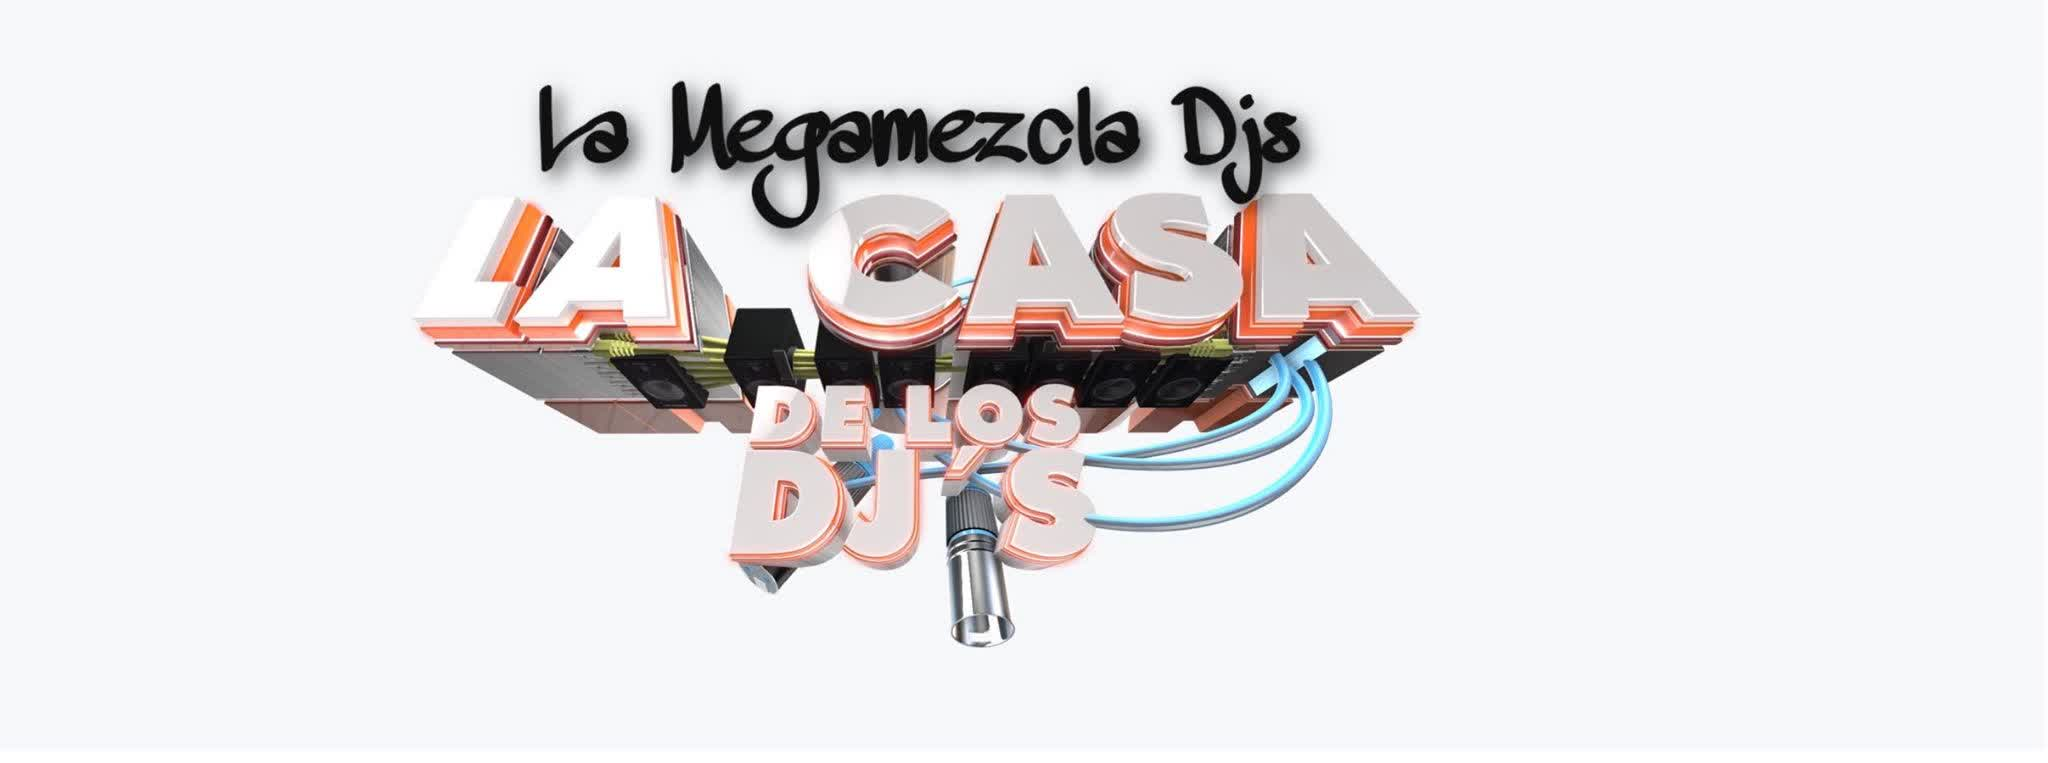 Fuerza Regia ft Junior H   Lowrider Gee (Clean) [ Int  Out] 80 Bpm lamegamezcladjs.com